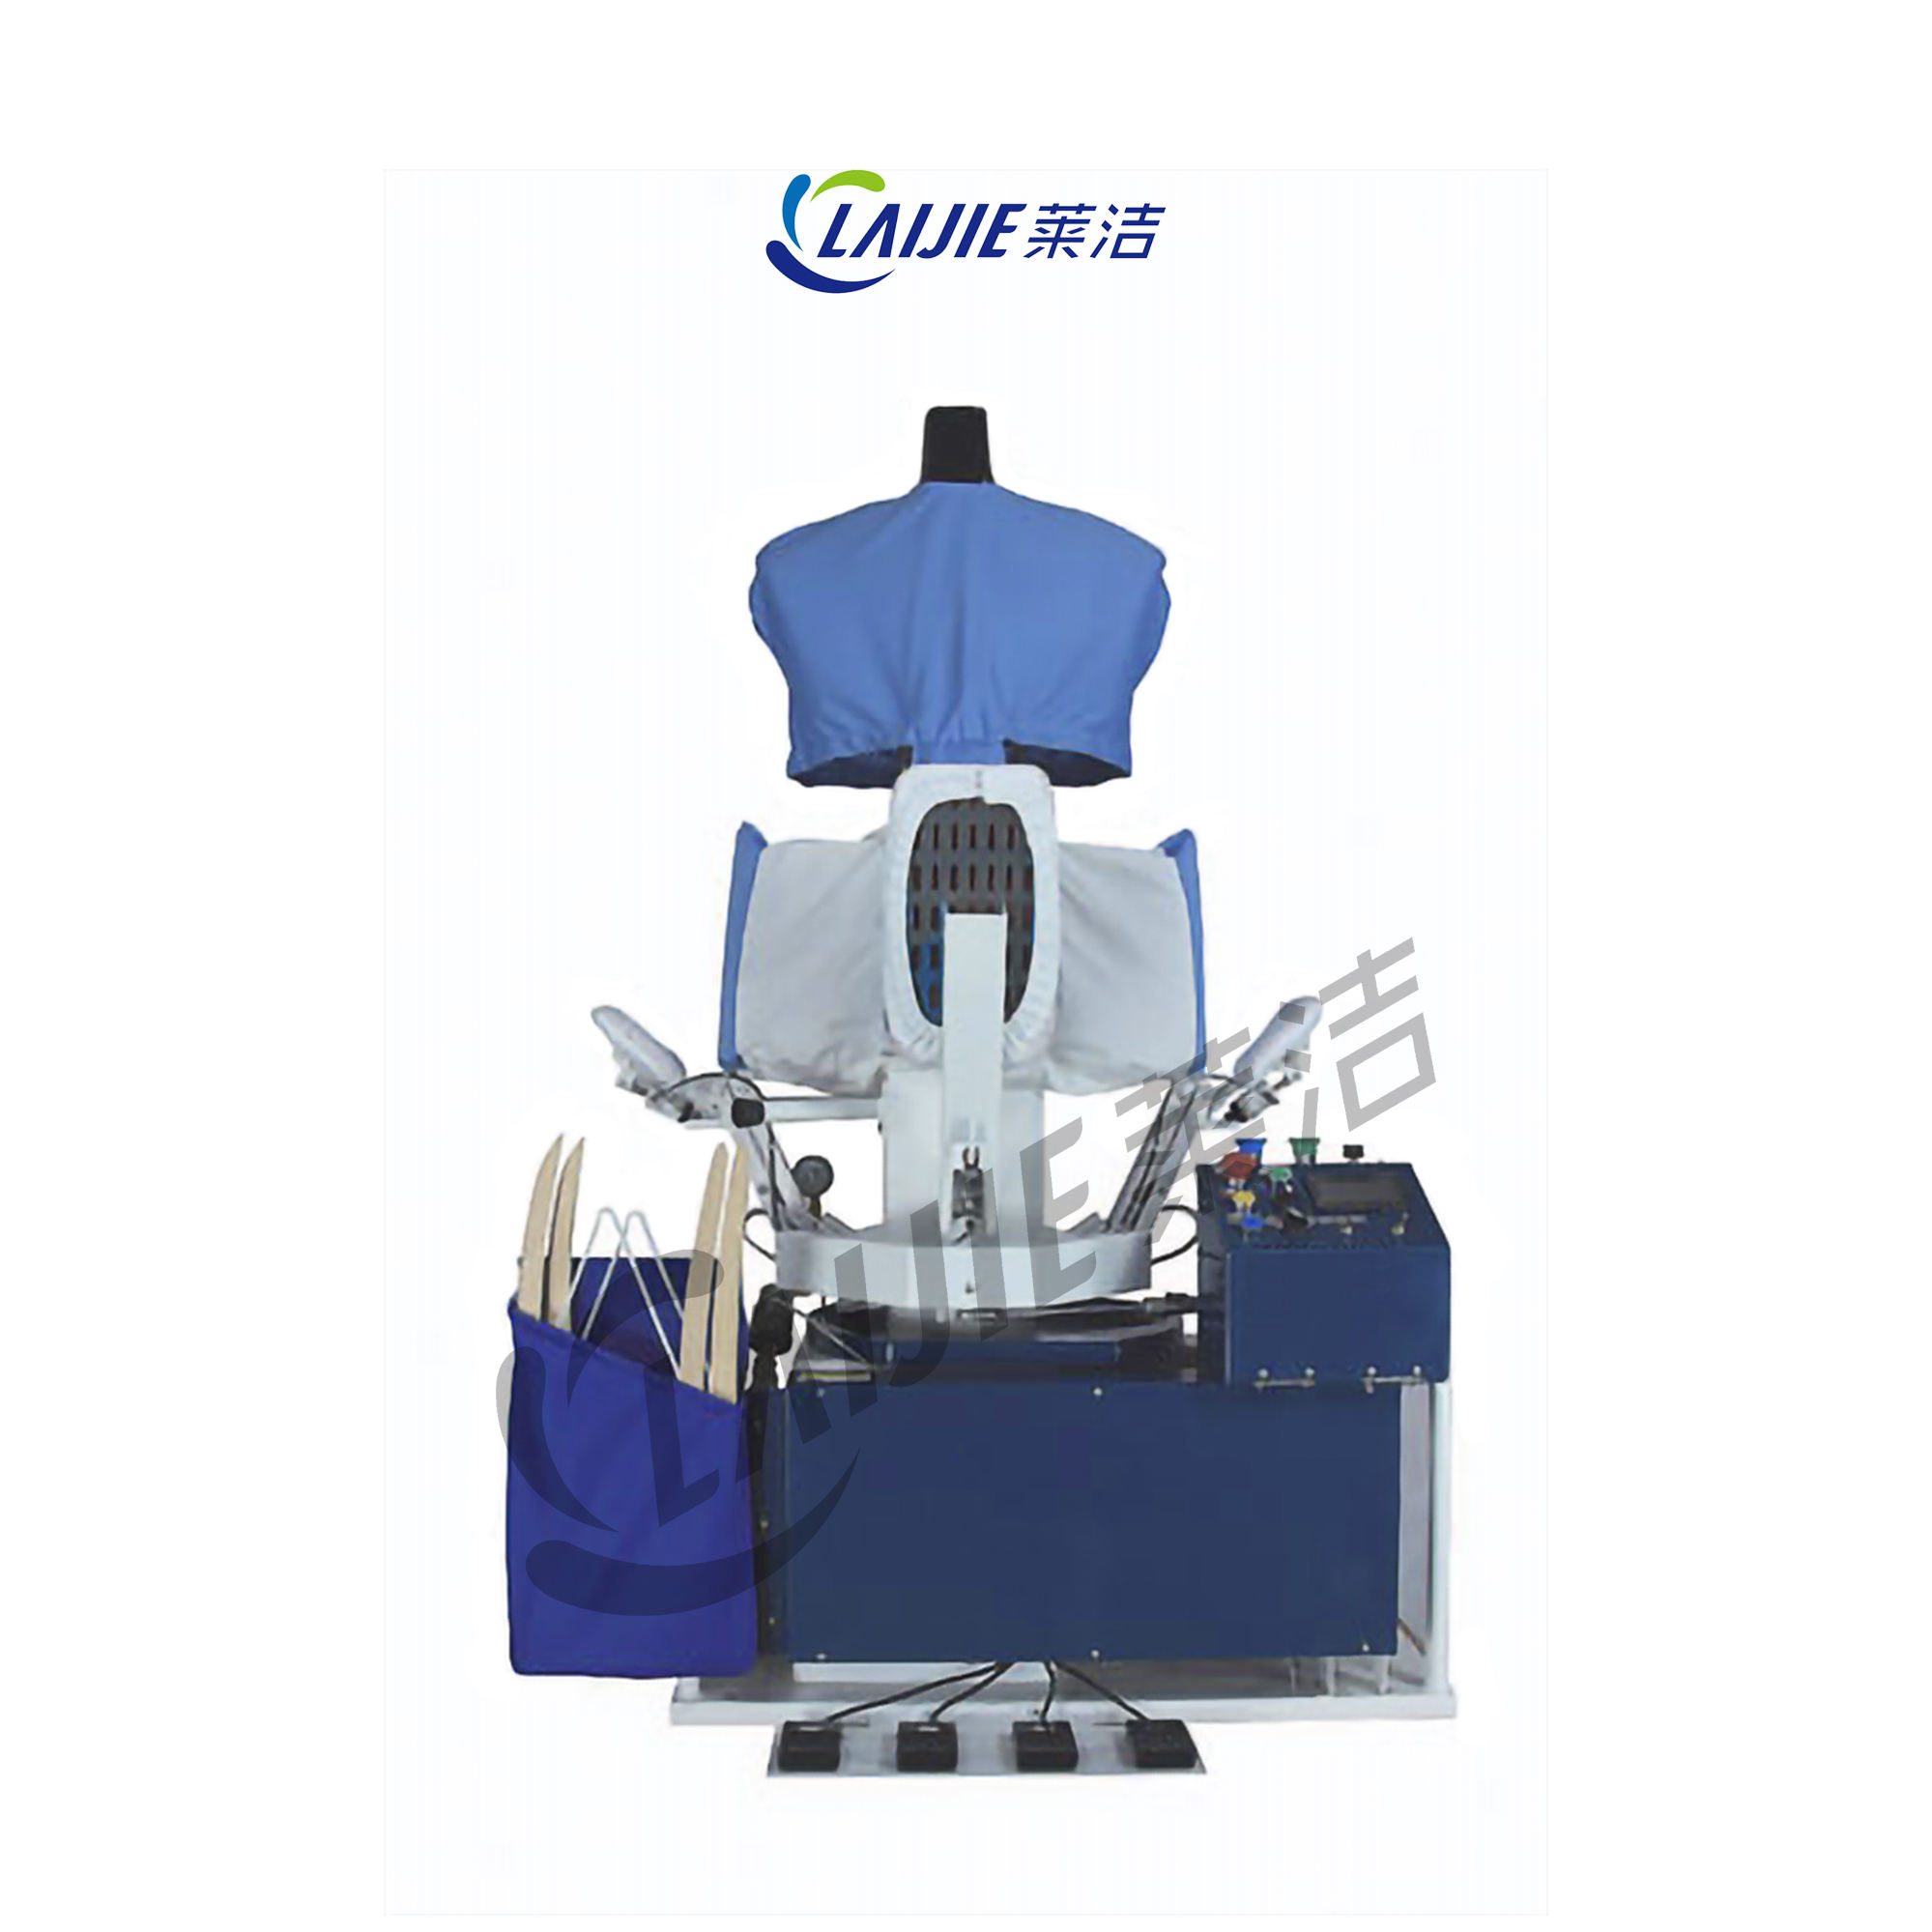 Dummy Machine Shirts Body Formers Ironing Machine Form Finisher For Laundry business